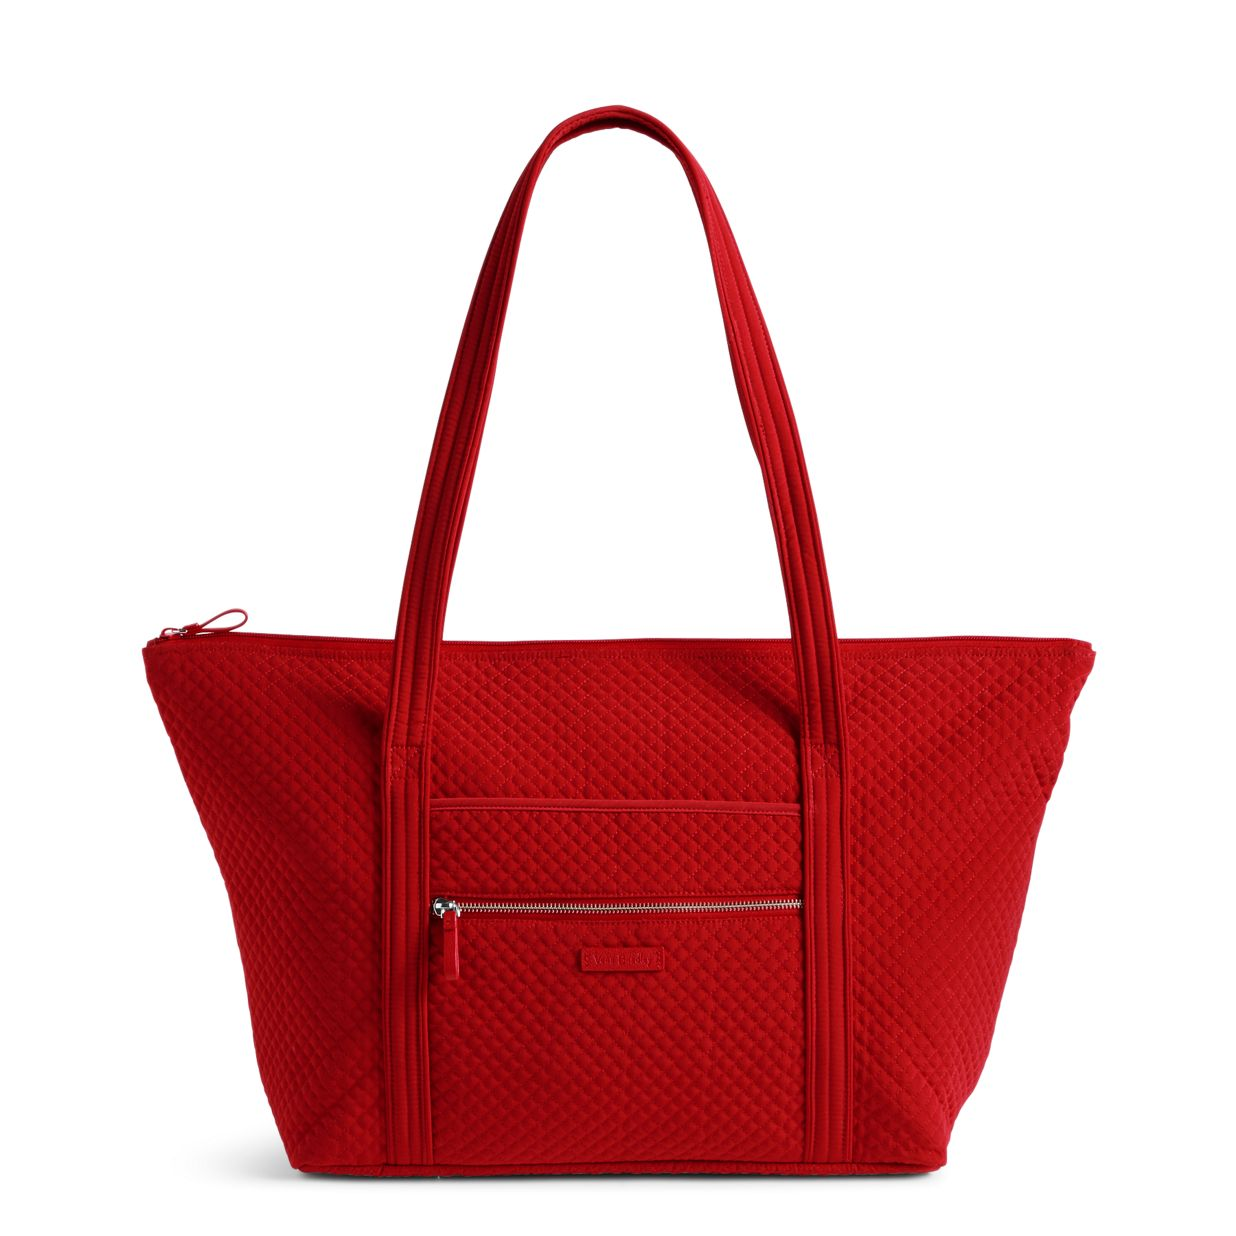 Image of Iconic Miller Travel Bag in Cardinal Red ... f57d5ae37a41e